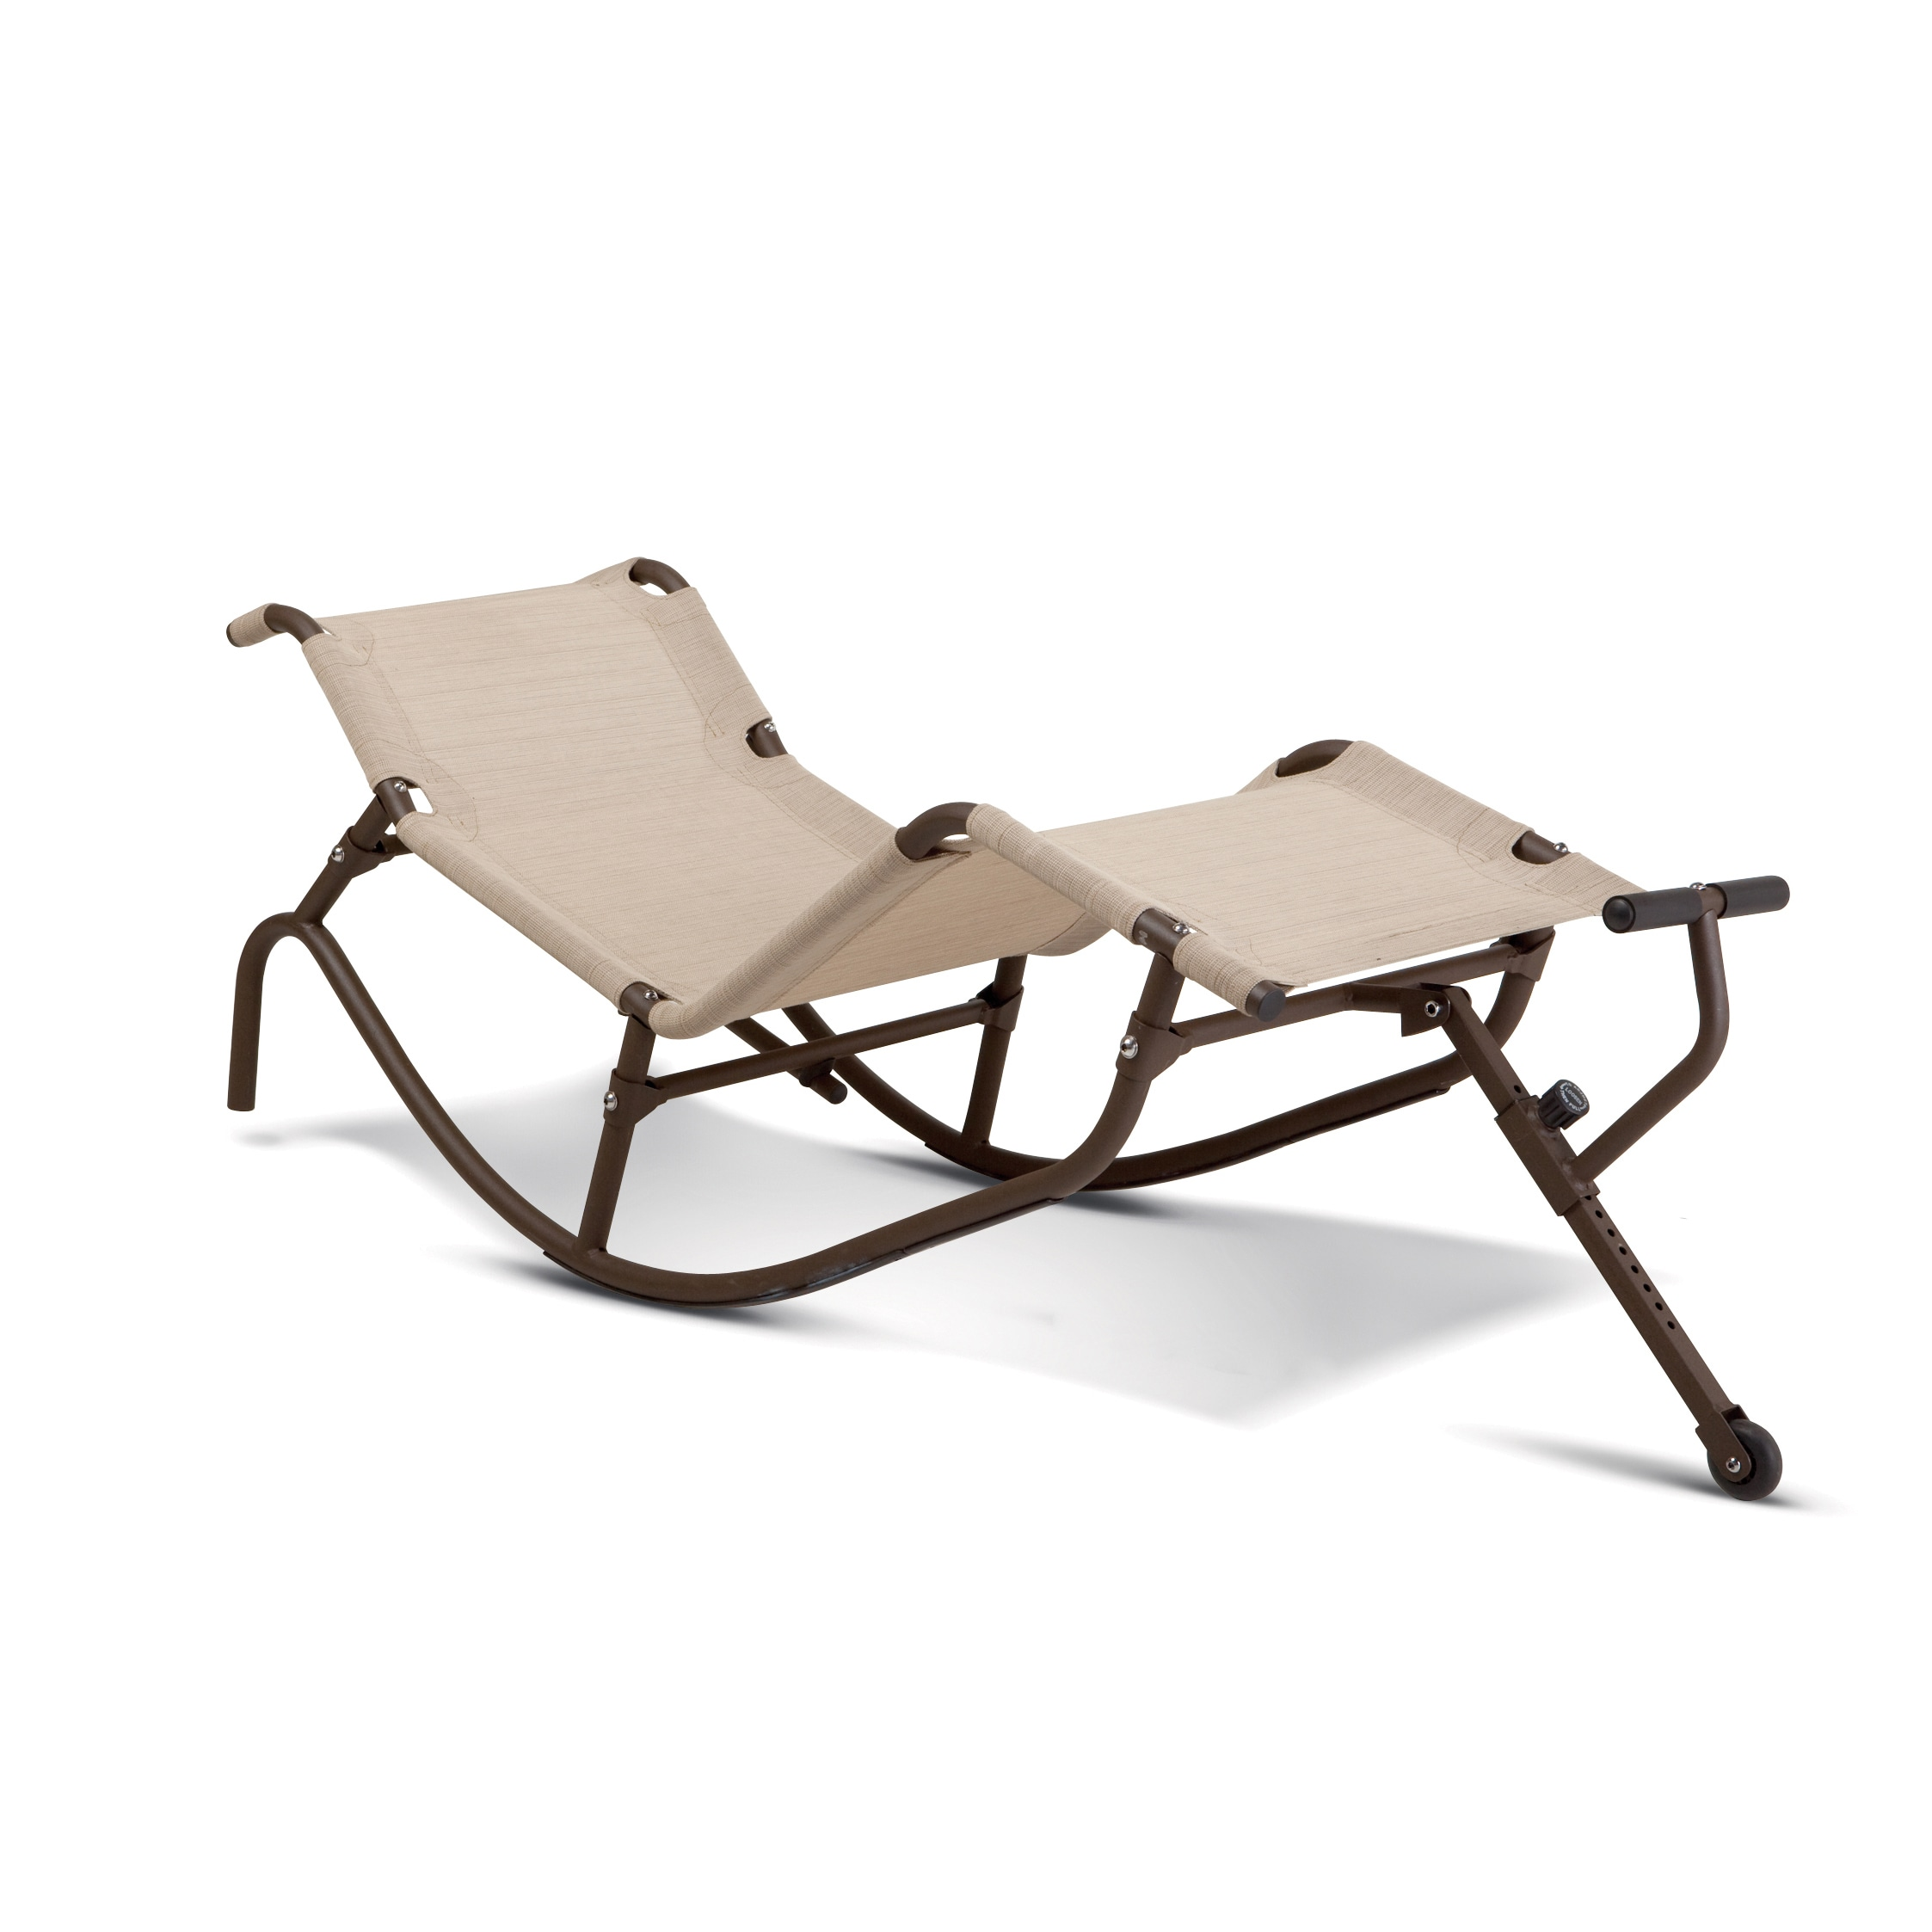 IMPEX Easy Outdoor Rocking Lounge Chair, Beige, Patio Fur...